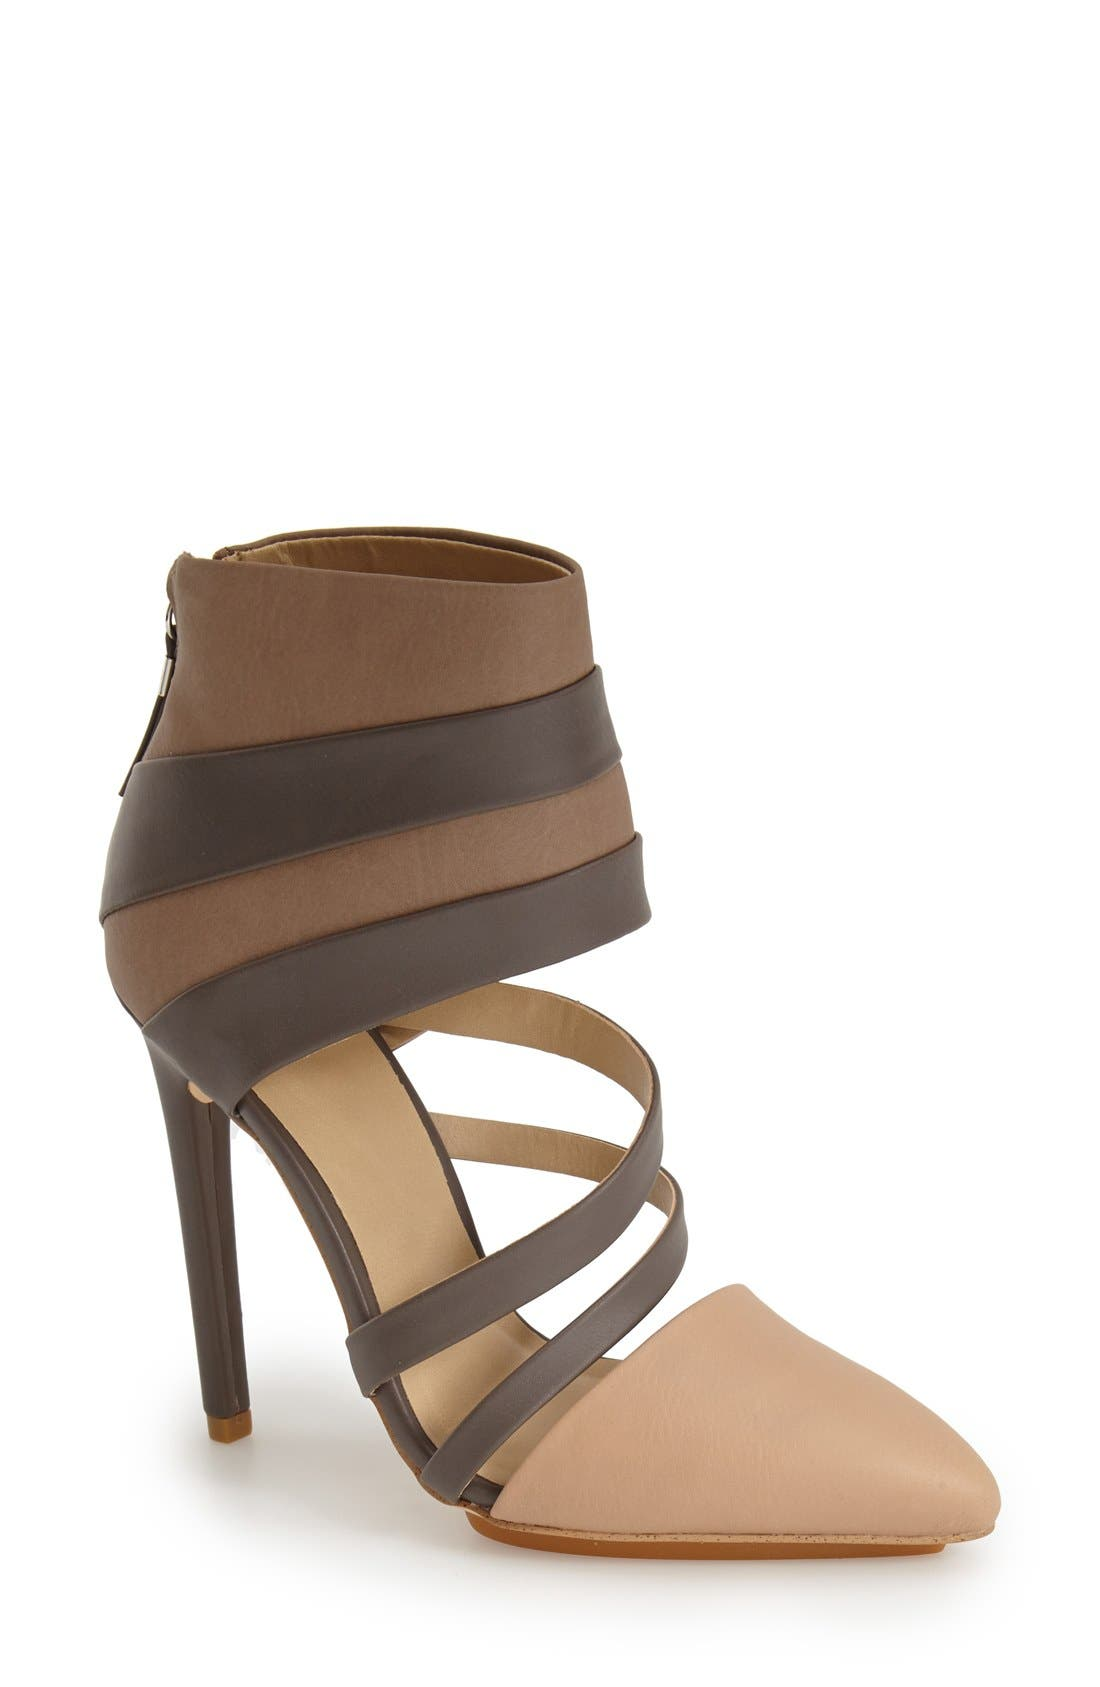 Alternate Image 1 Selected - gx by Gwen Stefani 'Cake' Pointy Toe Cutout Bootie (Women)